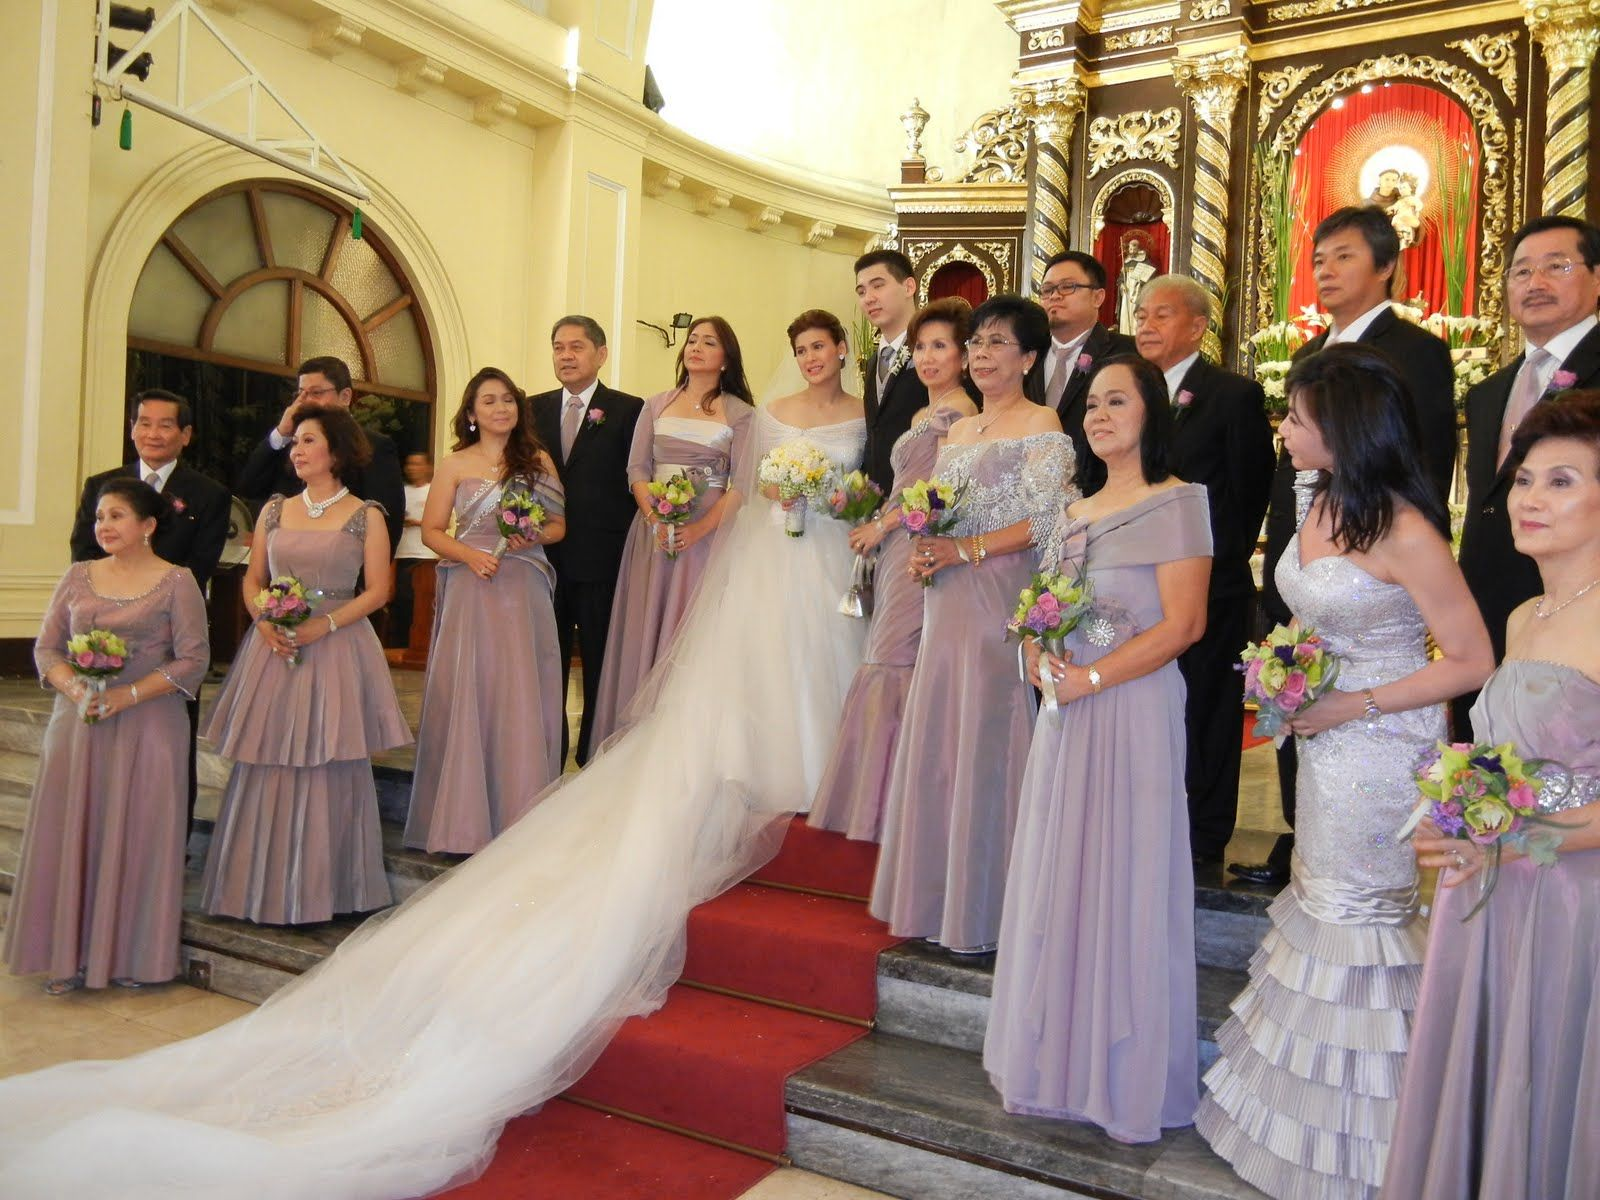 Principal Wedding Sponsor Gowns: Filipino Church Wedding Party Pictures